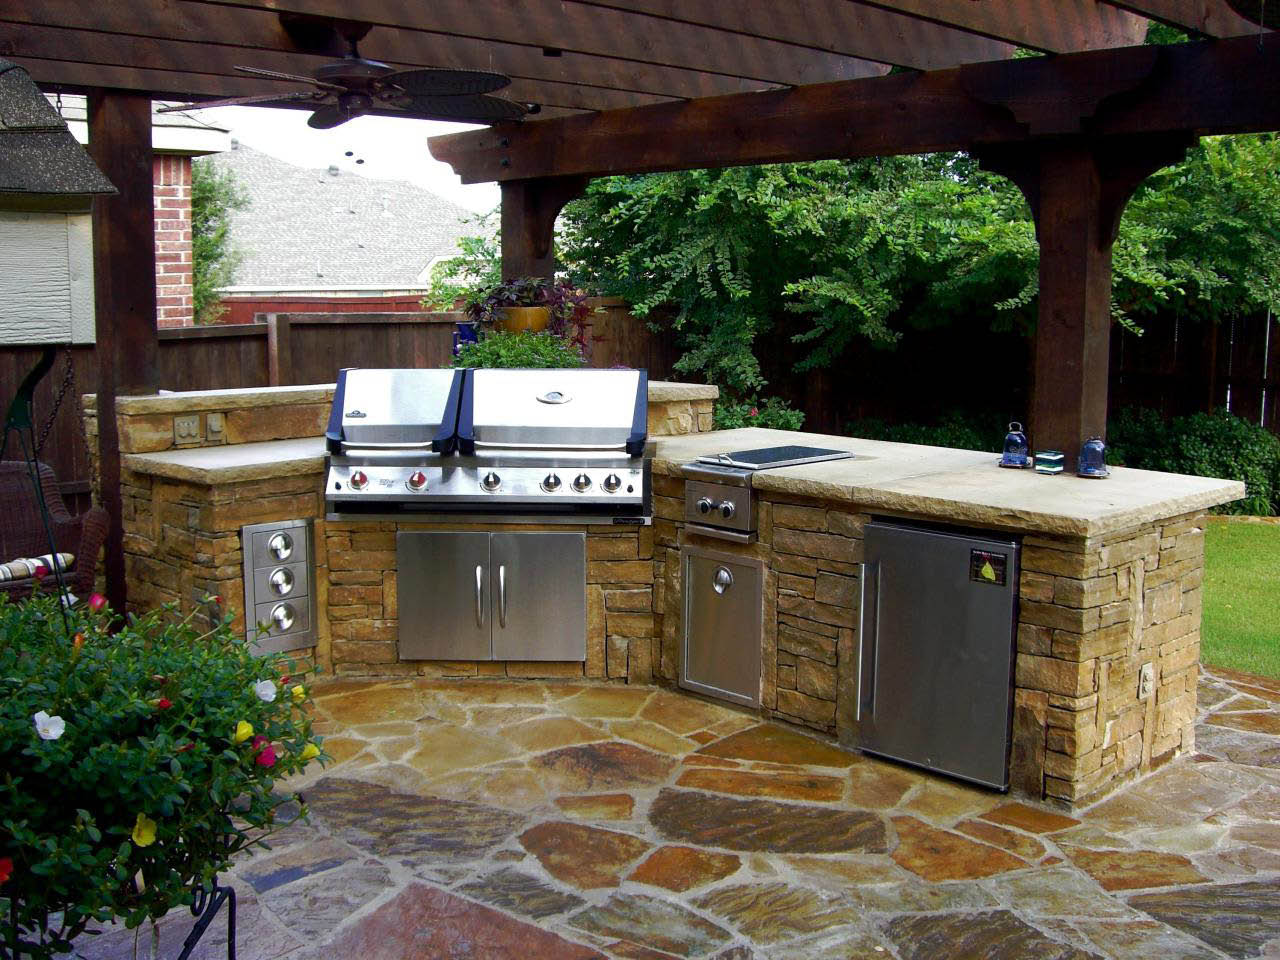 Galvans Lawn & Landscape Outdoor Kitchen Picture